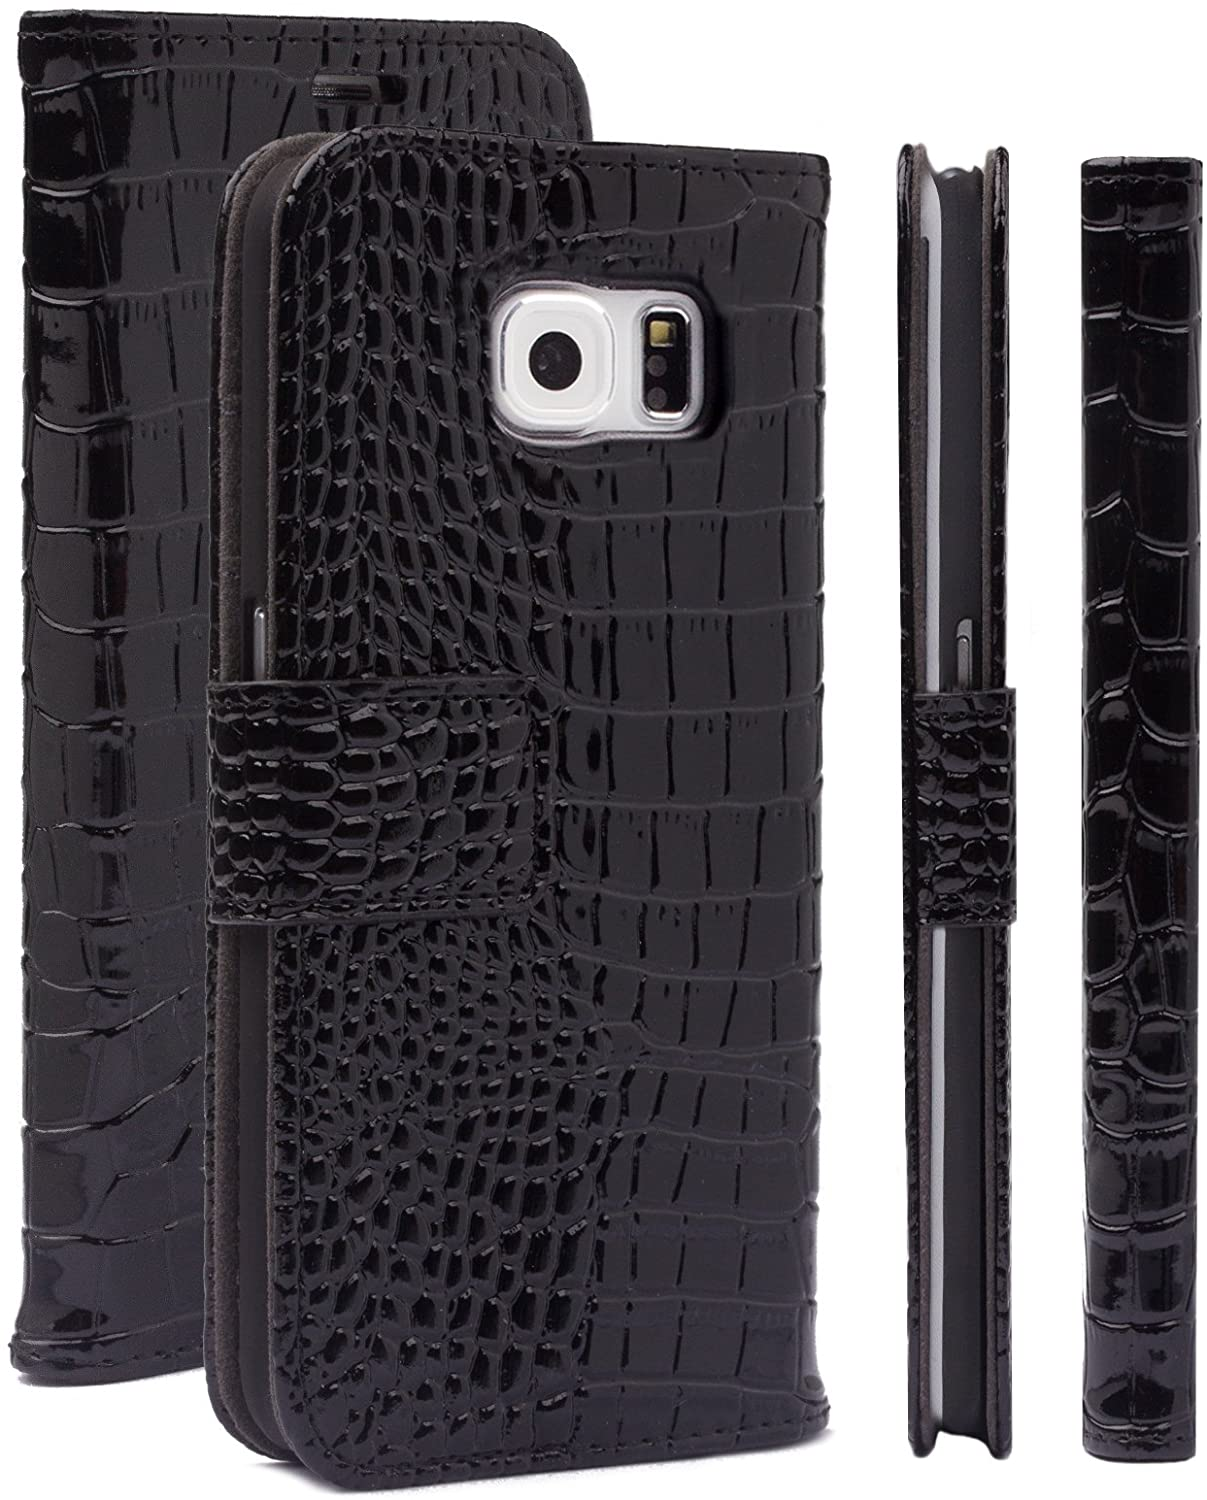 Samsung Galaxy S6 Edge Case | iCues Caiman Crocodile Black | Maraba Wallet | Other Leather - and Color Variations Available | Protective Cover with Card Slots - Kickstand and Gift Box | Flip Folio